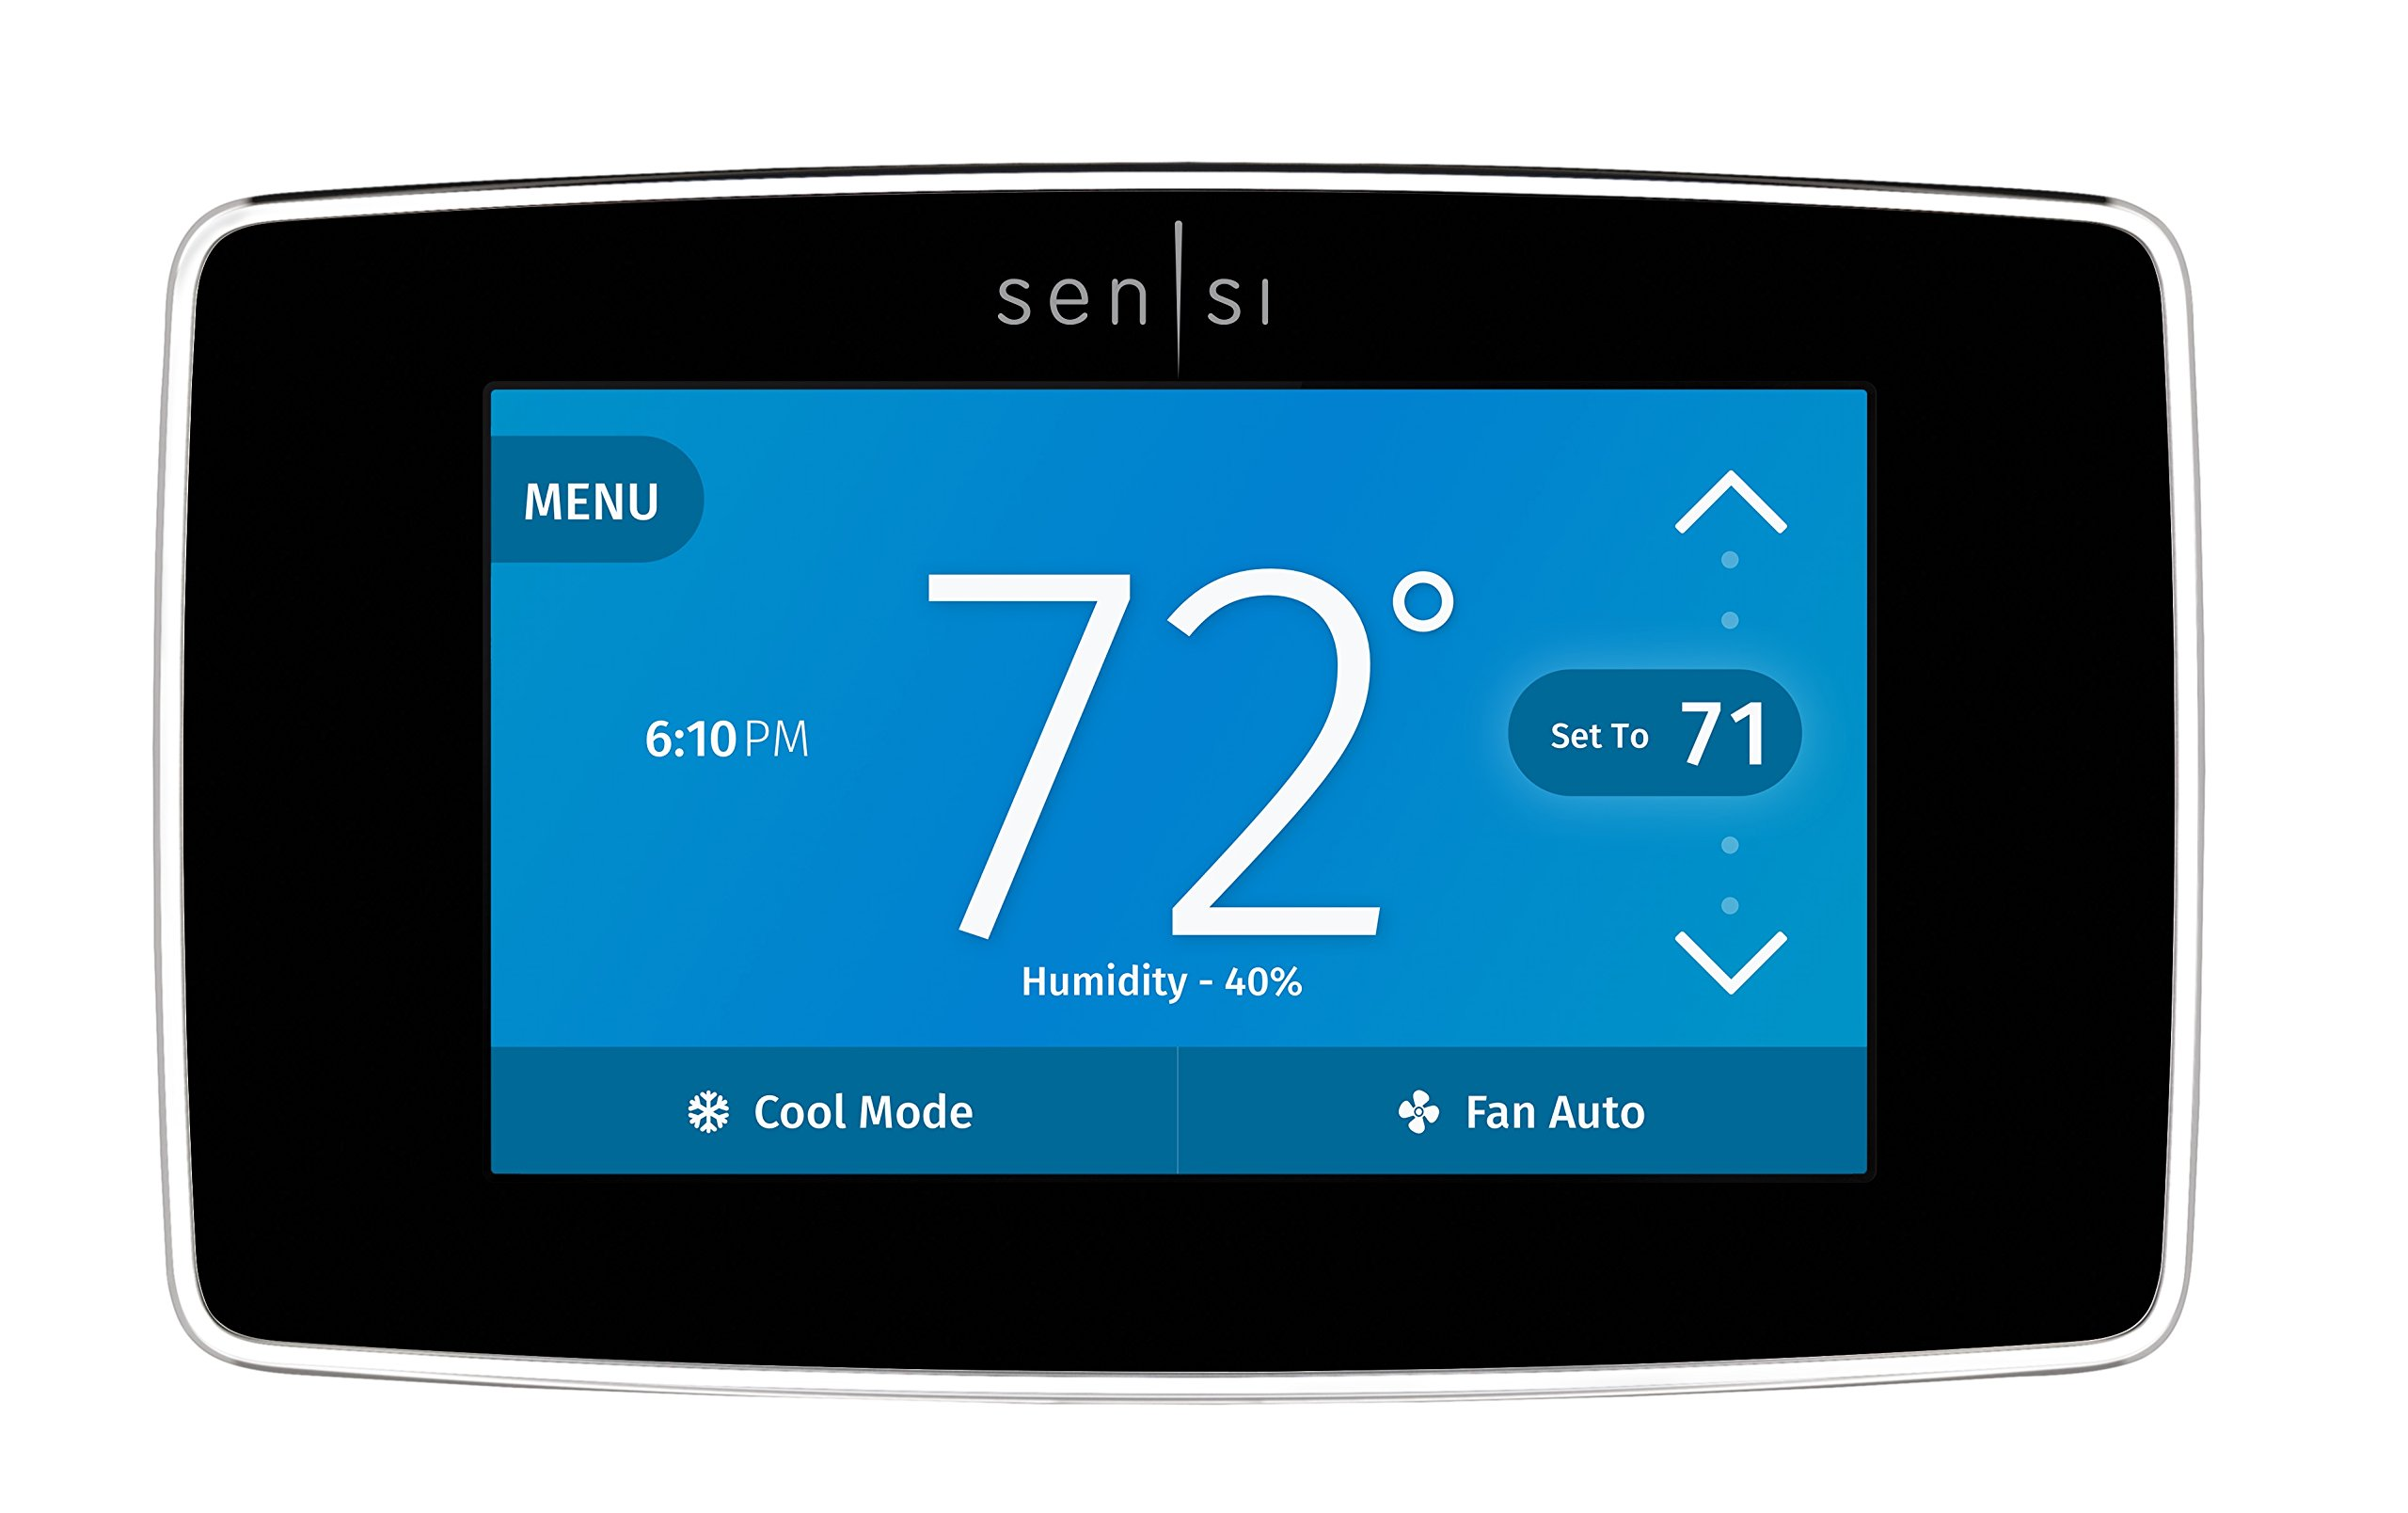 Emerson Sensi Touch Wi-Fi Thermostat with Touchscreen Color Display for Smart Home, ST75 by Emerson Thermostats